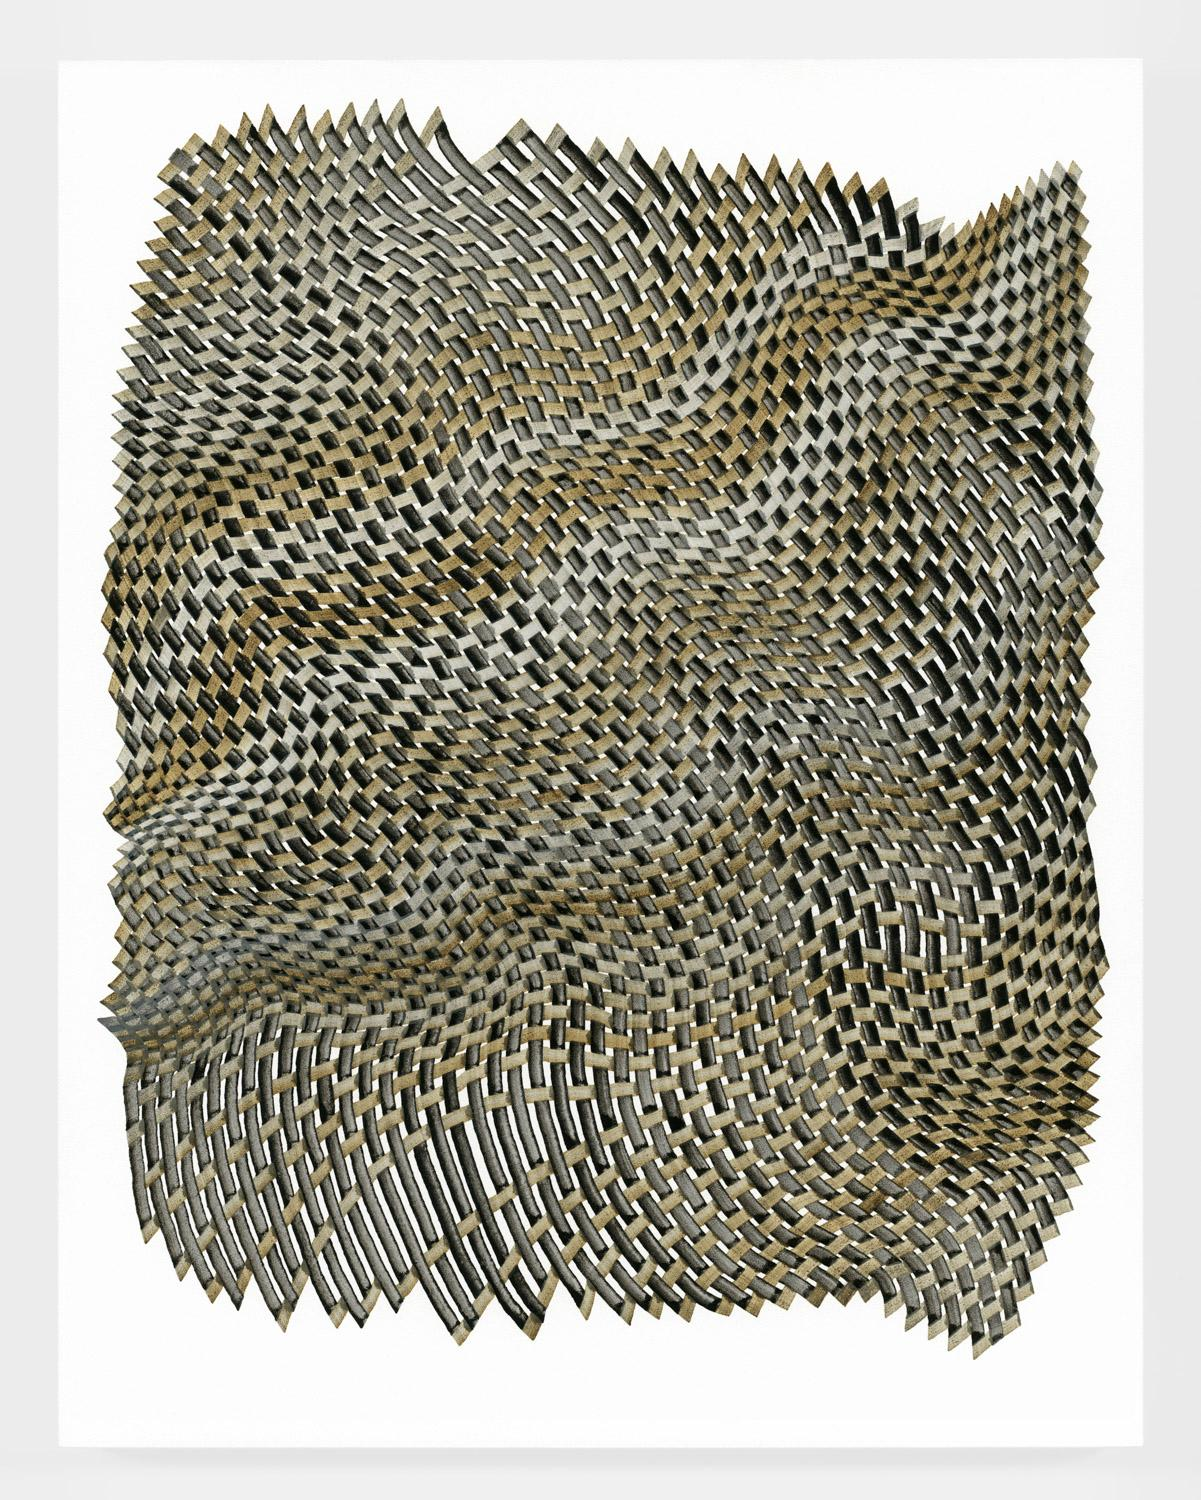 Woven lines 44 - abstract geometric brown grey dominant ink drawing on paper